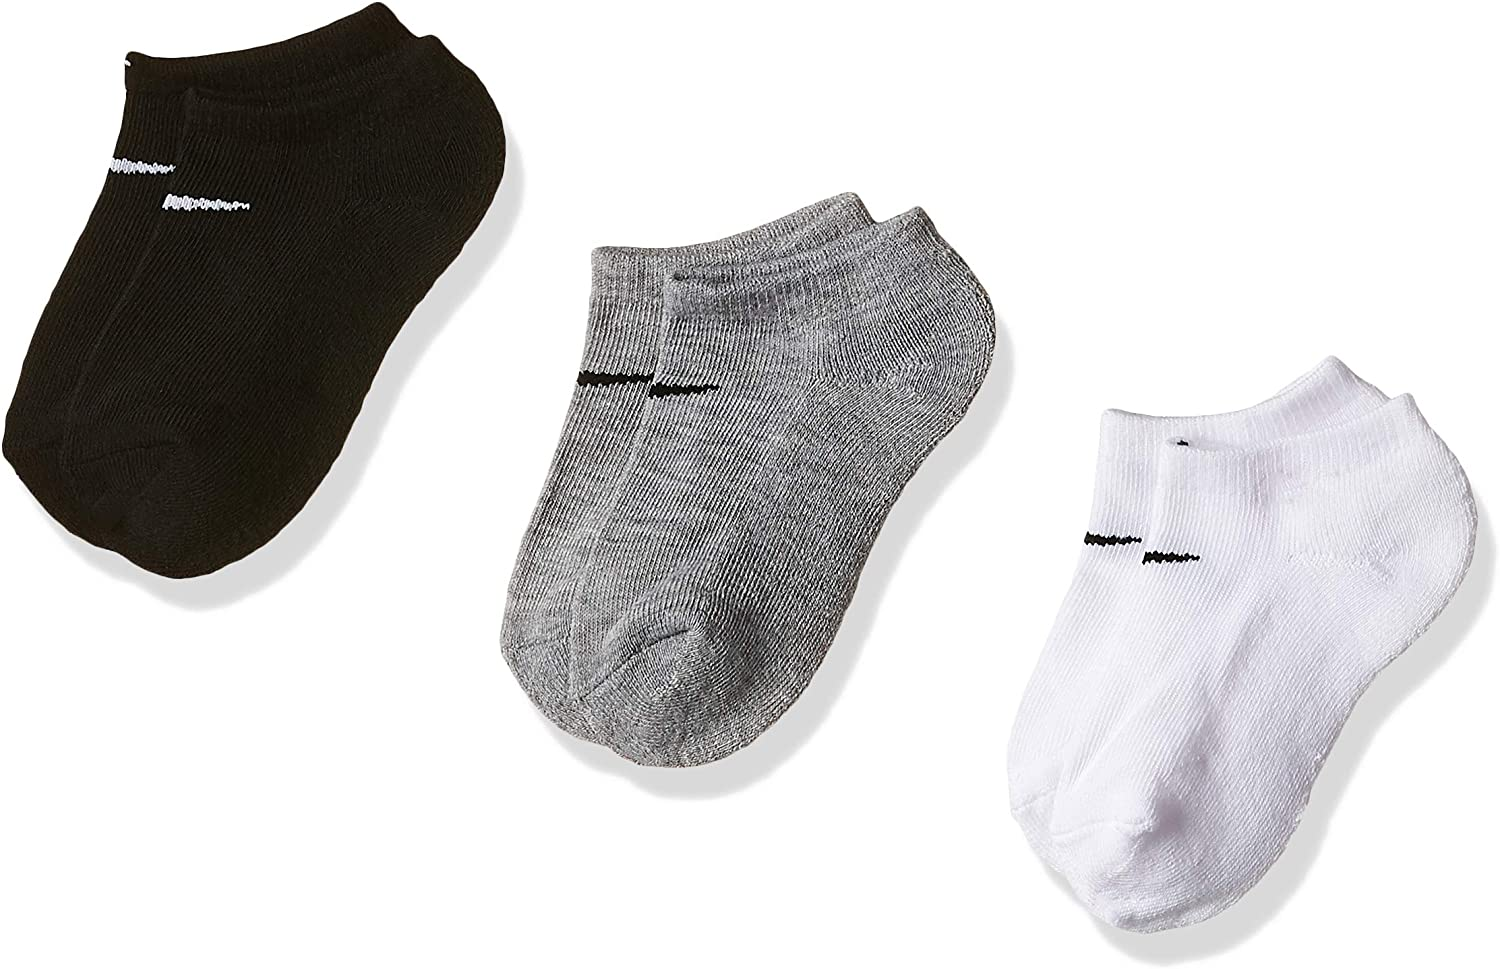 Nike Socks Toddler/Little Kid's 3-Pairs Grey Asst. No Show Sz: 5-7 Fits 10C-3Y